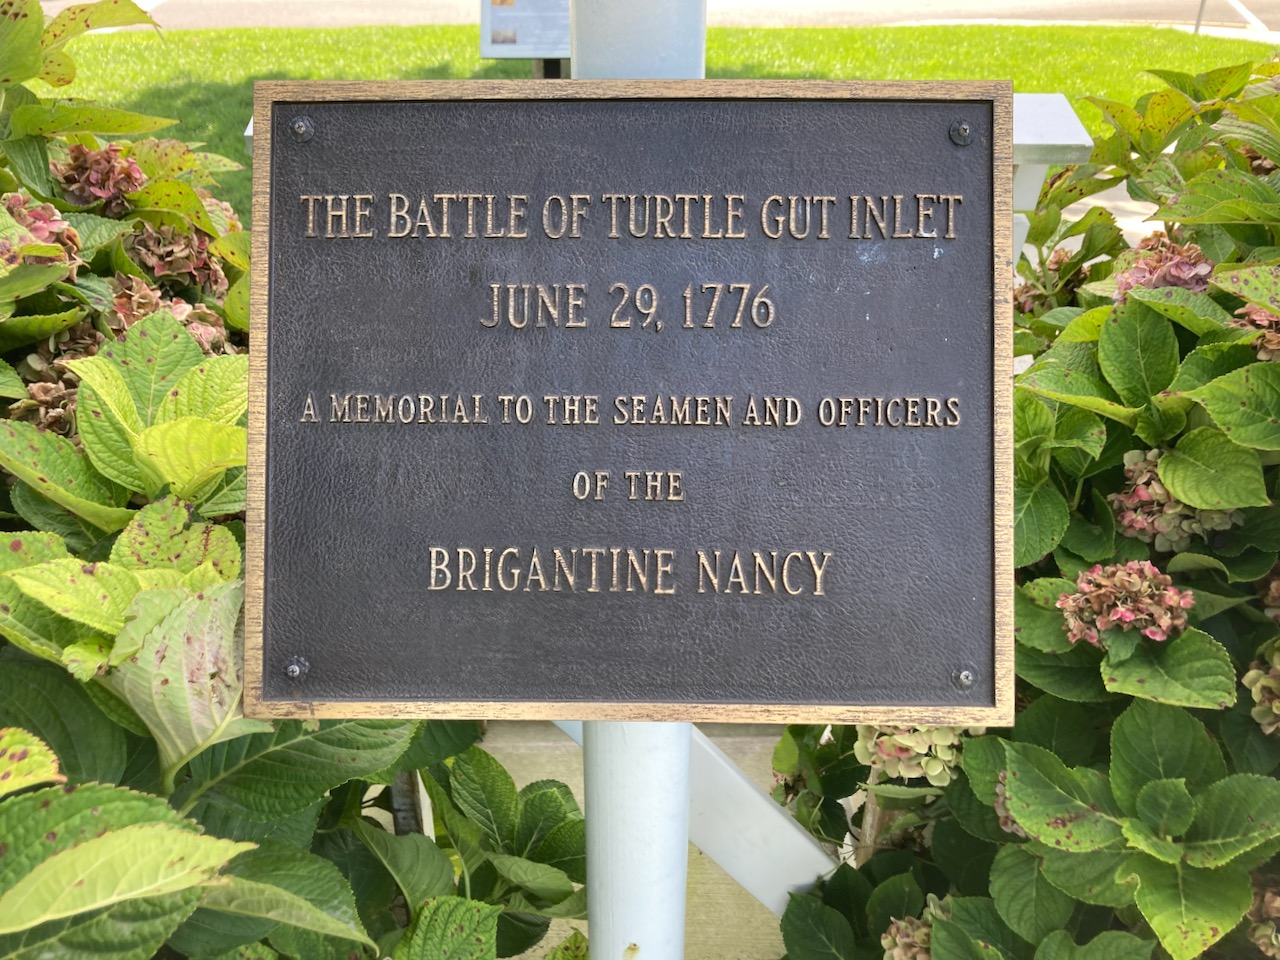 Marker that says THE BATTLE OF TURTLE GUT INLET JUNE 29 1776 A MEMORIAL TO THE SEAMEN AND OFFICERS OF THE BRIGANTINE NANCY.